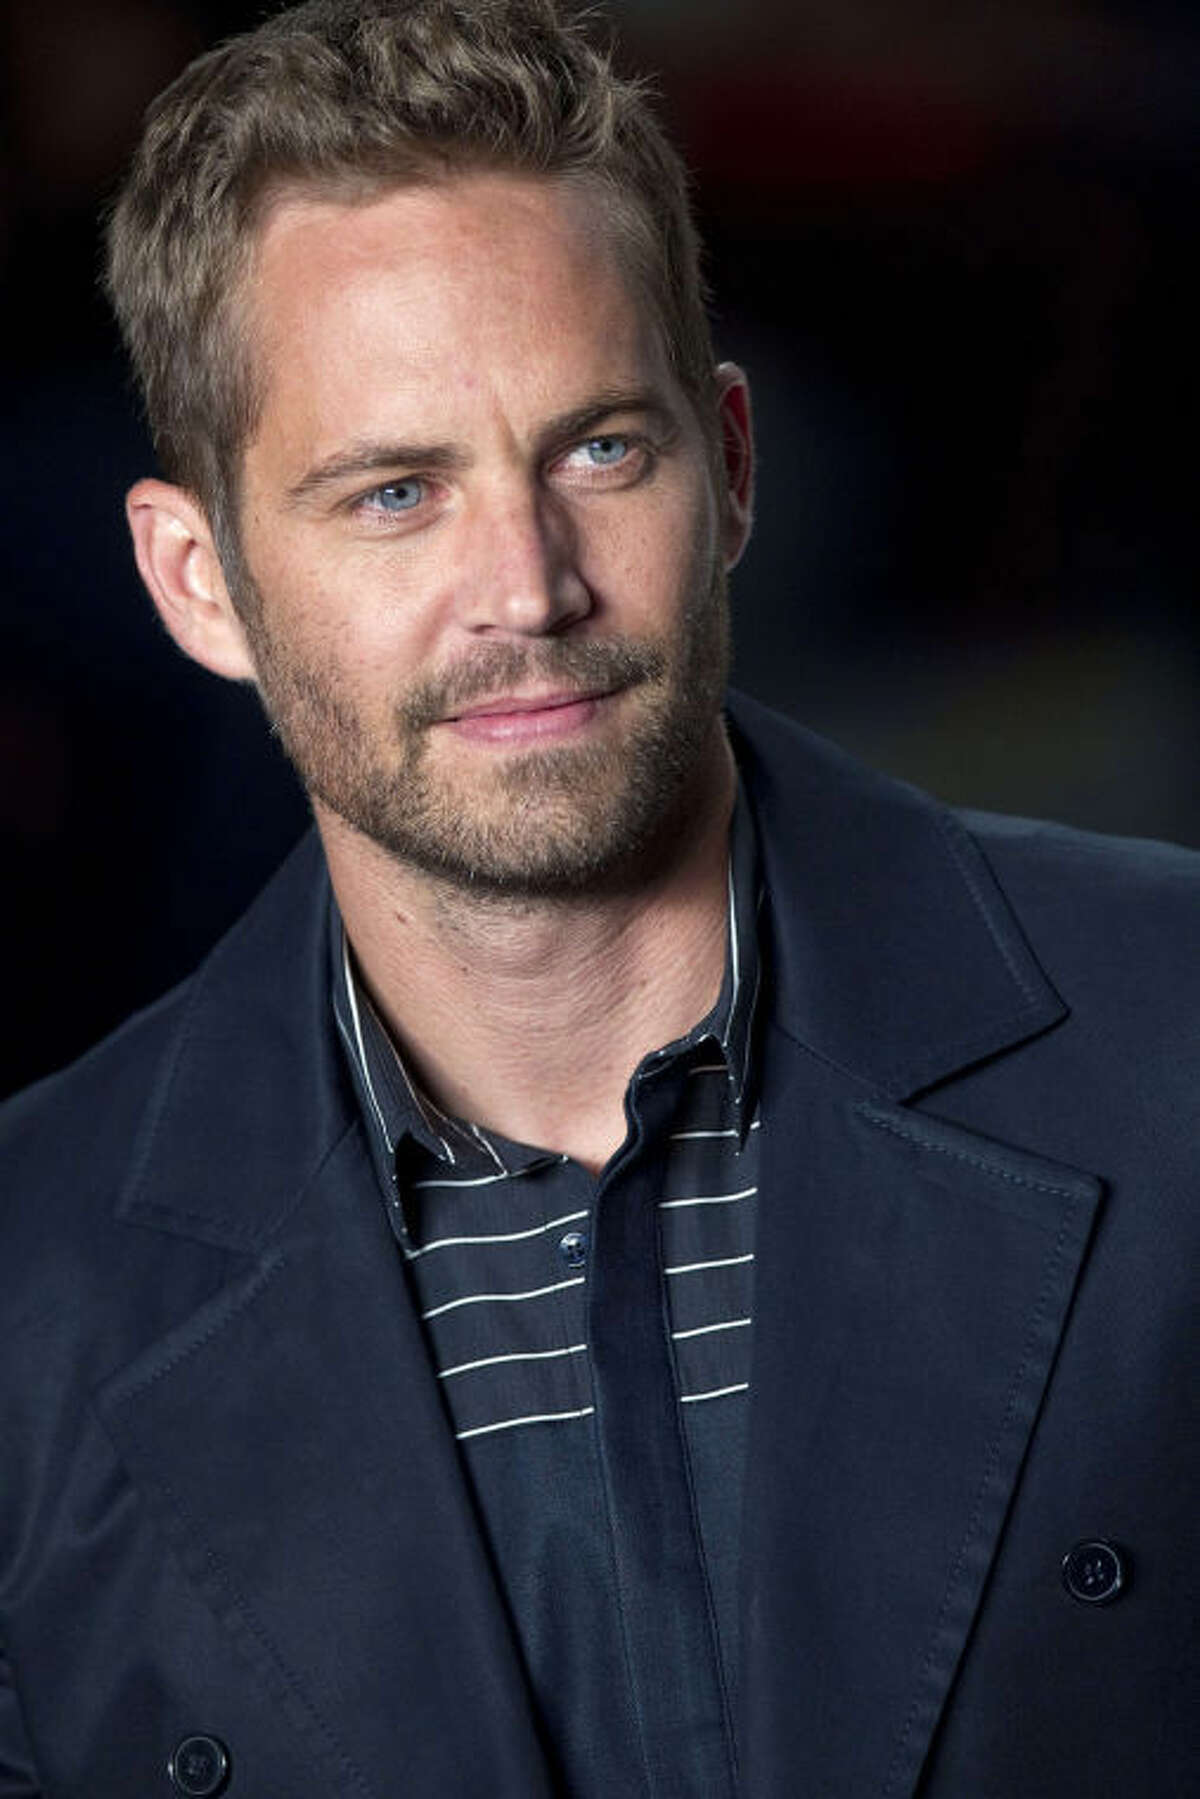 File-This March 21, 2013 file photo shows actor Paul Walker wearing a creation from the Colcci summer collection at Sao Paulo Fashion Week in Sao Paulo, Brazil. A publicist for actor Walker says the star of the